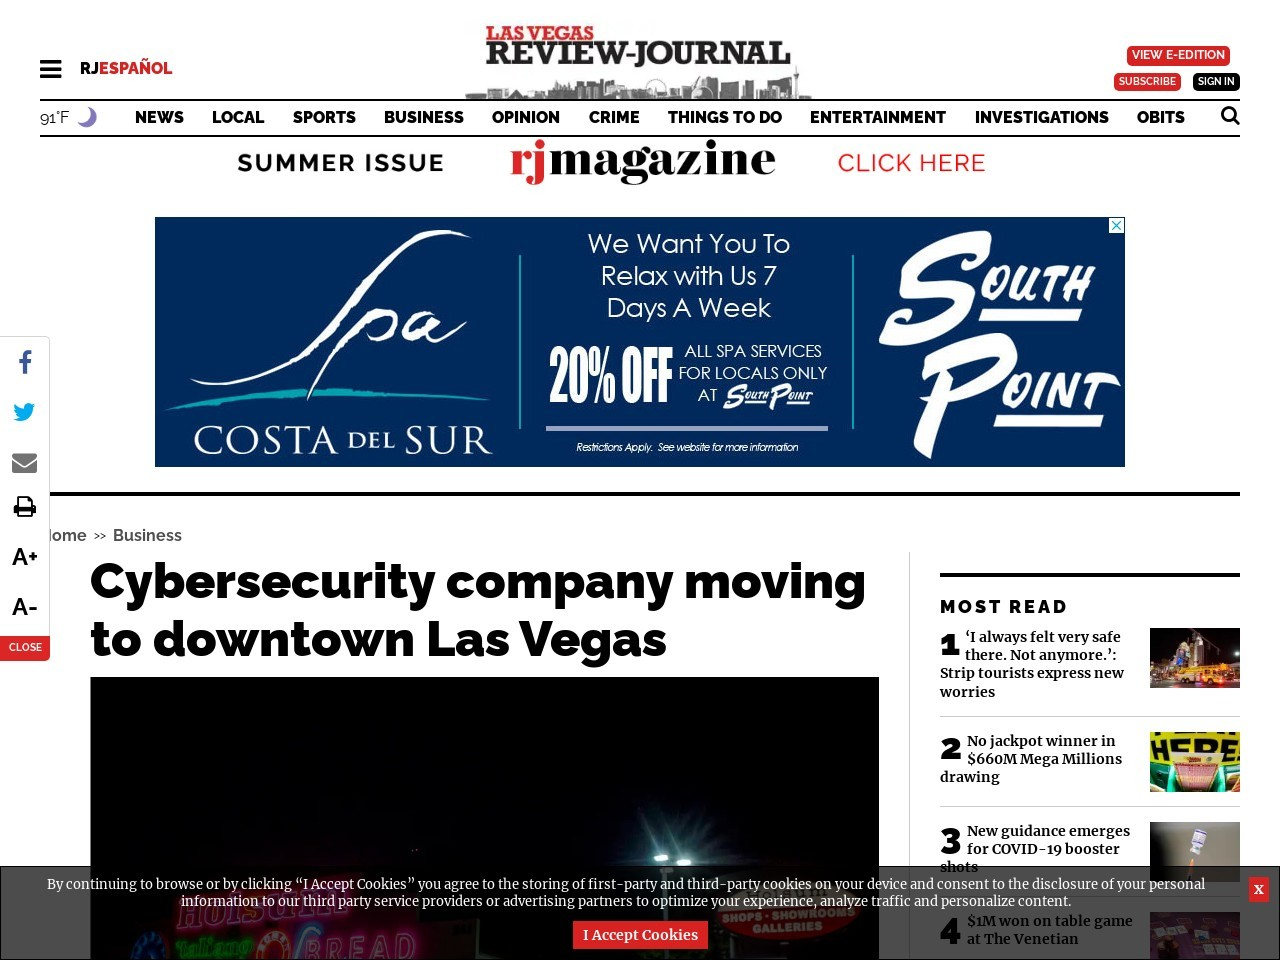 Cybersecurity company moving to downtown Las Vegas